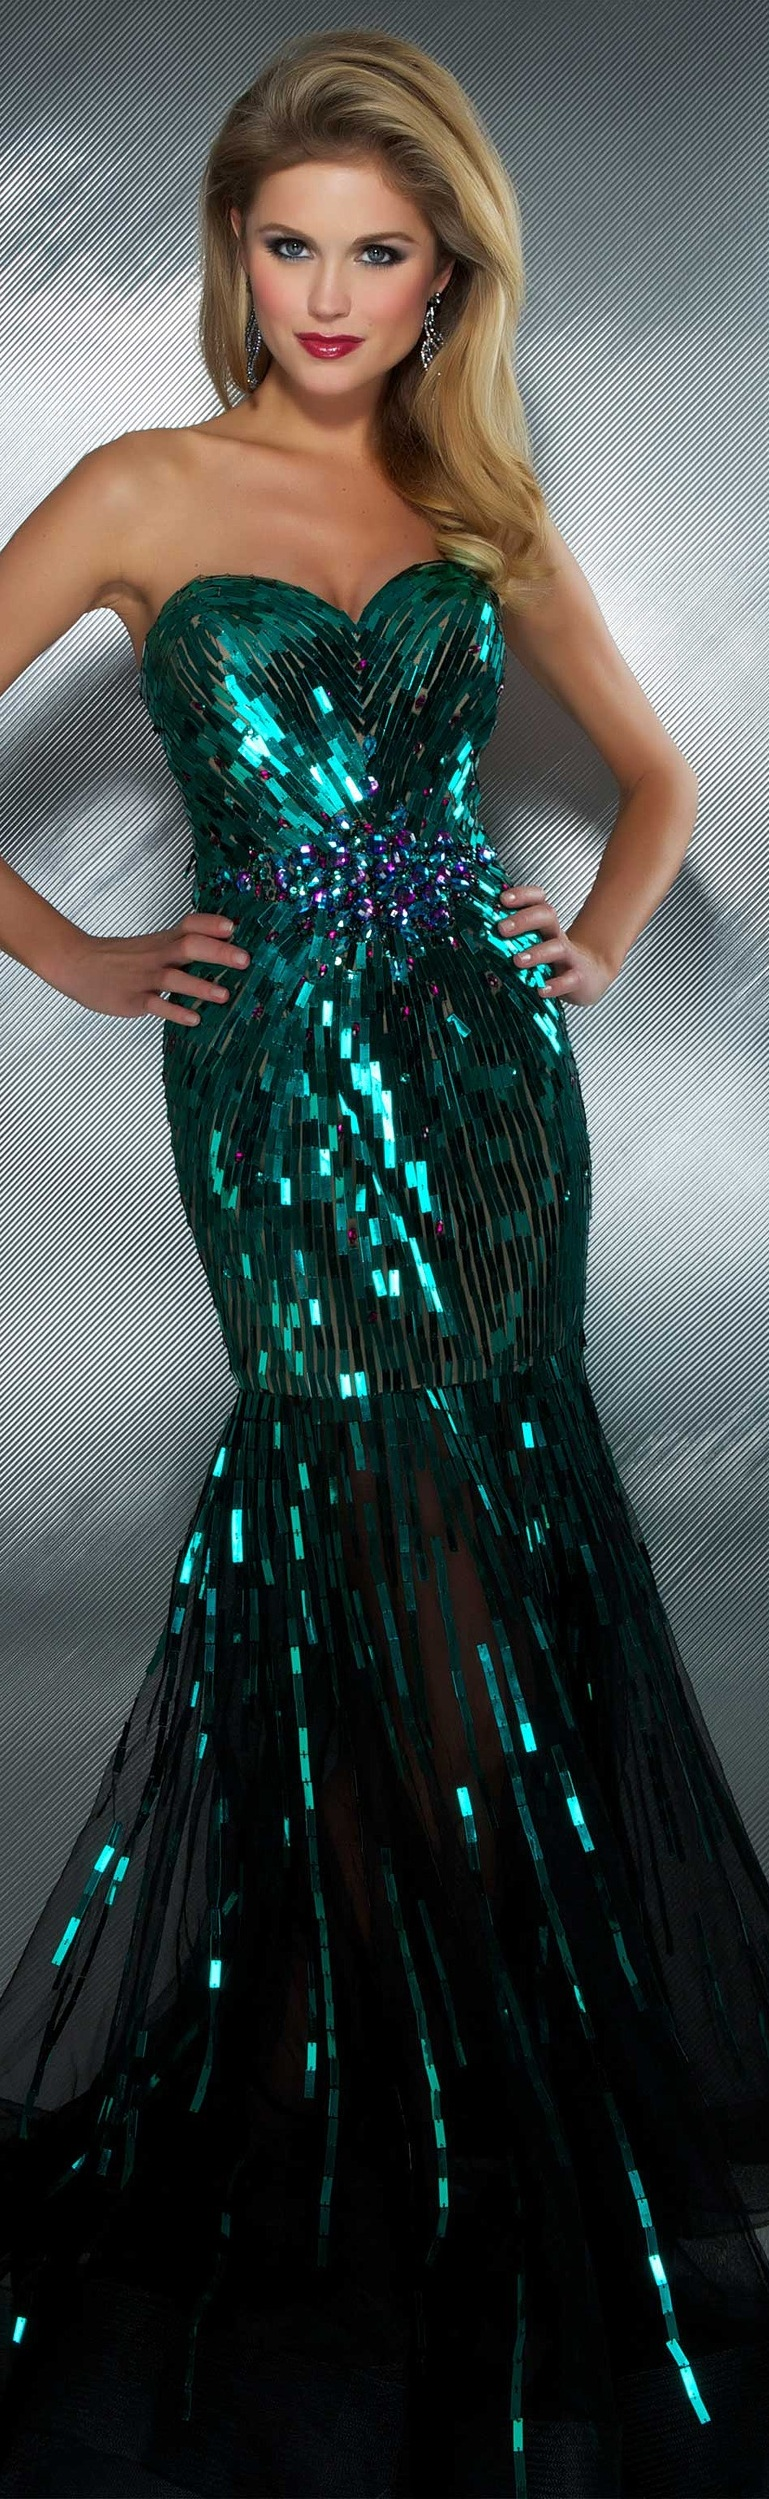 Mac duggal couture long glittery sequinned peacock green